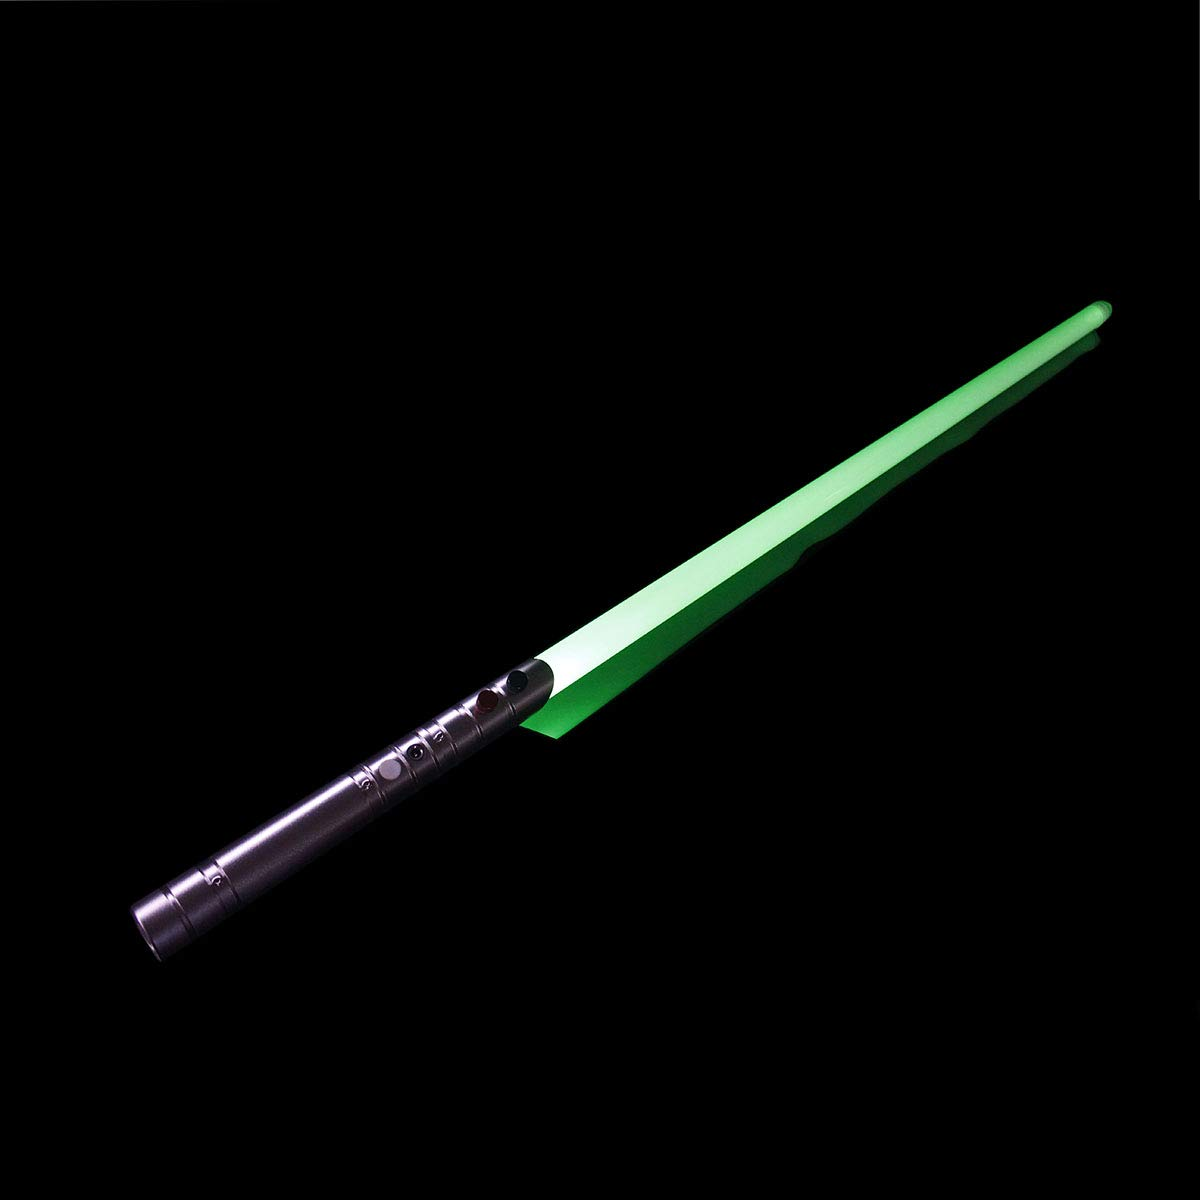 YDD Jedi Sith LED Light Saber Force FX Heavy Dueling Lightsaber with Blaster Lock-up Sound and Flash on Clash Light, Metal Hilt, Color Changing, Christmas Toy for Kids (Silver Hilt Color Changing) by YDD (Image #1)